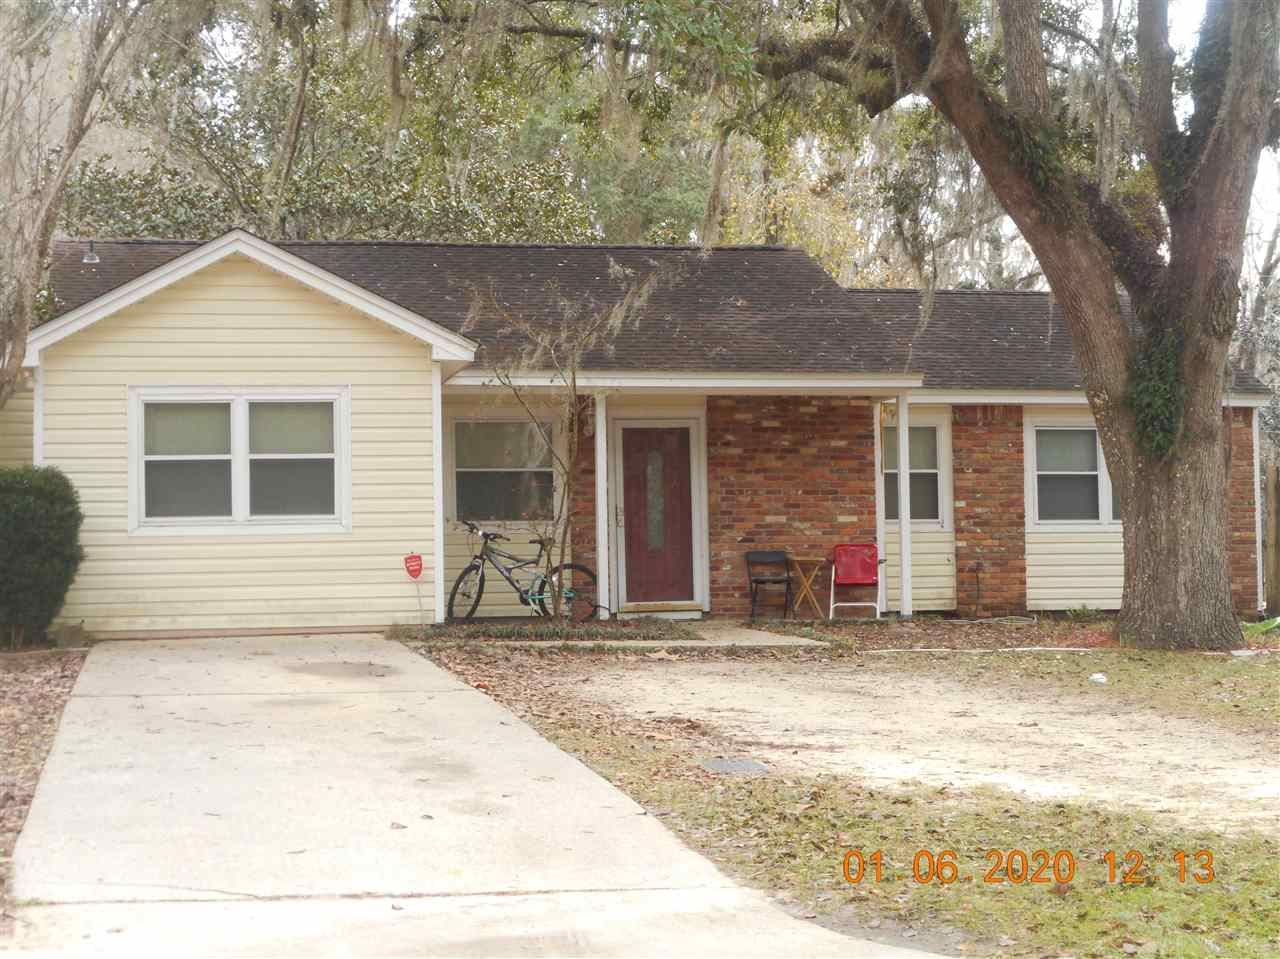 Photo of 2708 Fairingdon Drive, TALLAHASSEE, FL 32303-2533 (MLS # 316016)